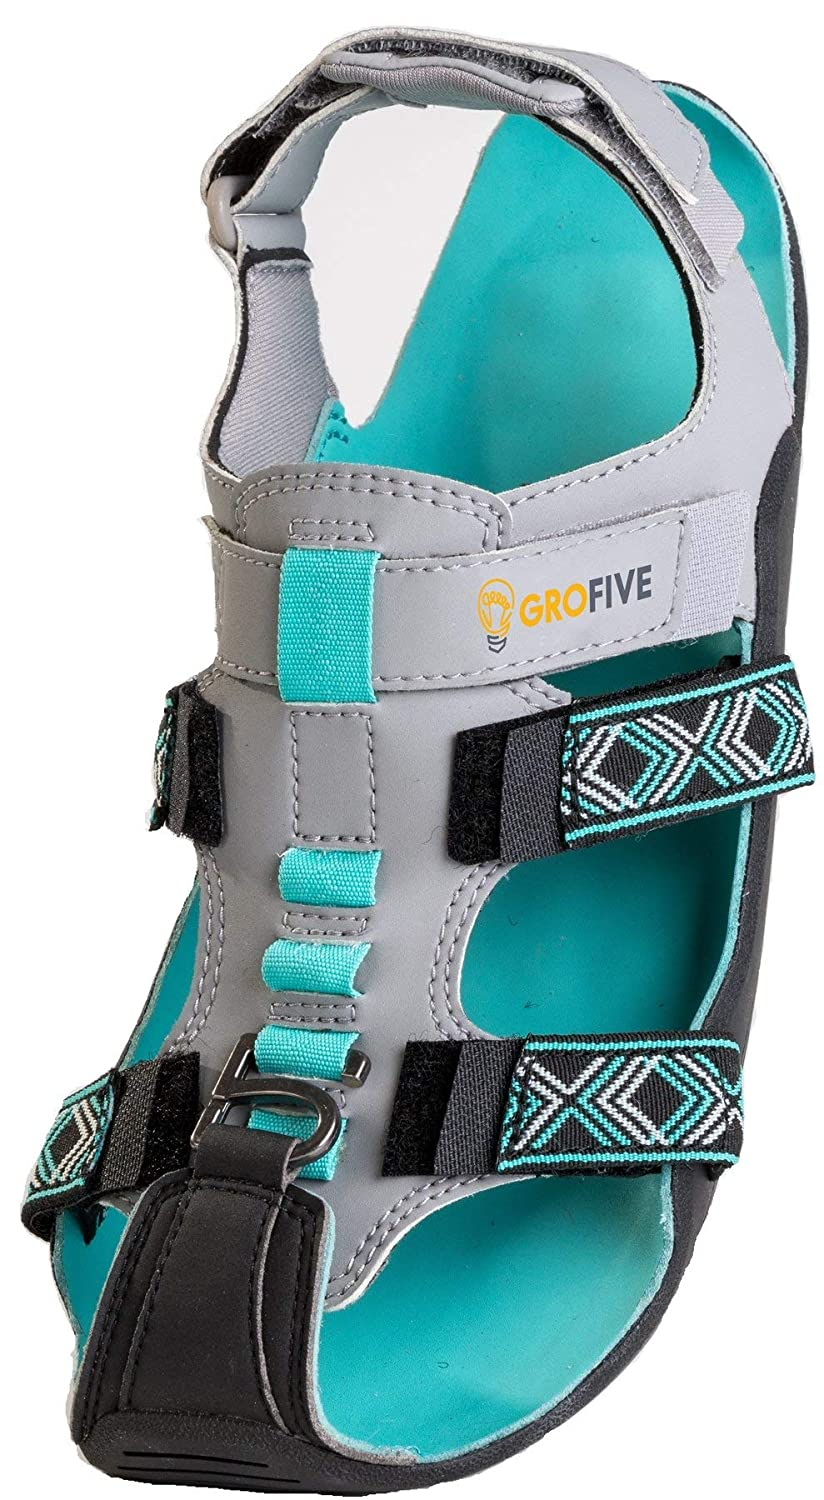 Expandable GroFive Expandal Little Kid//Big Kid Supports The Shoe That Grows Sustainable Functional Sandals Built Durable Enough to Last 5 Sizes of Growth on Growing Feet